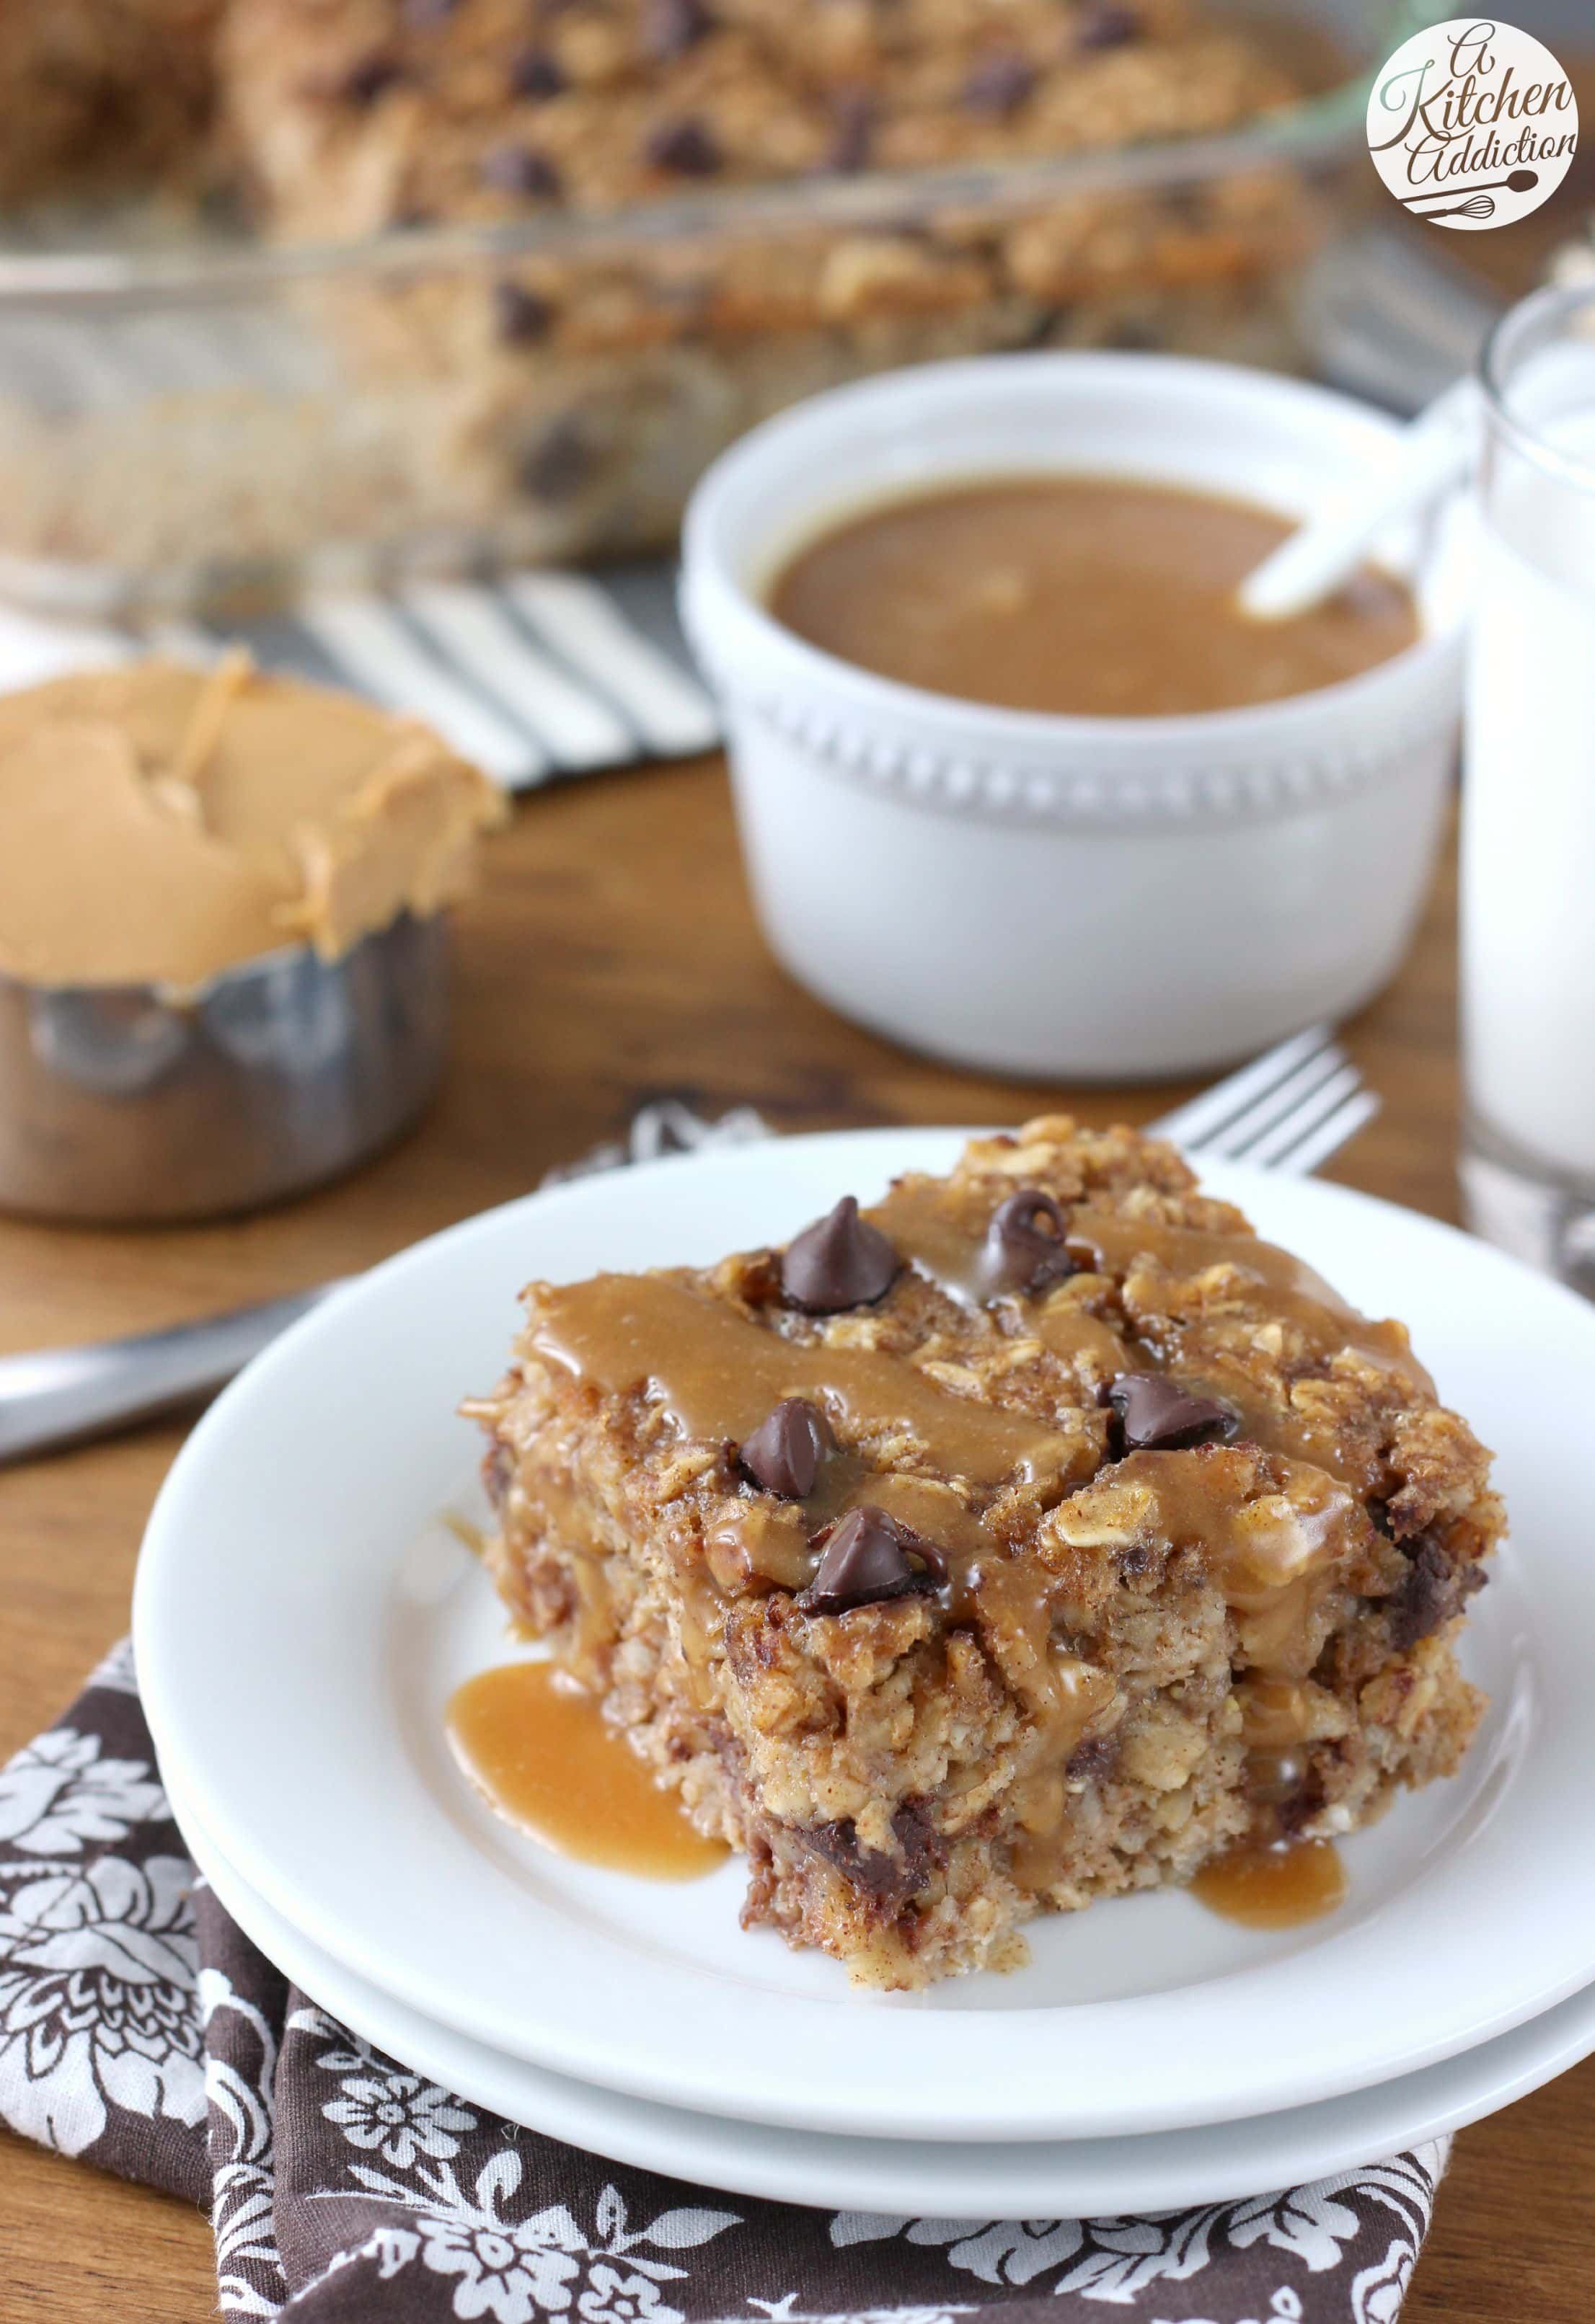 Peanut Butter Chocolate Chip Banana Bread Baked Oatmeal Recipe from A Kitchen Addiction